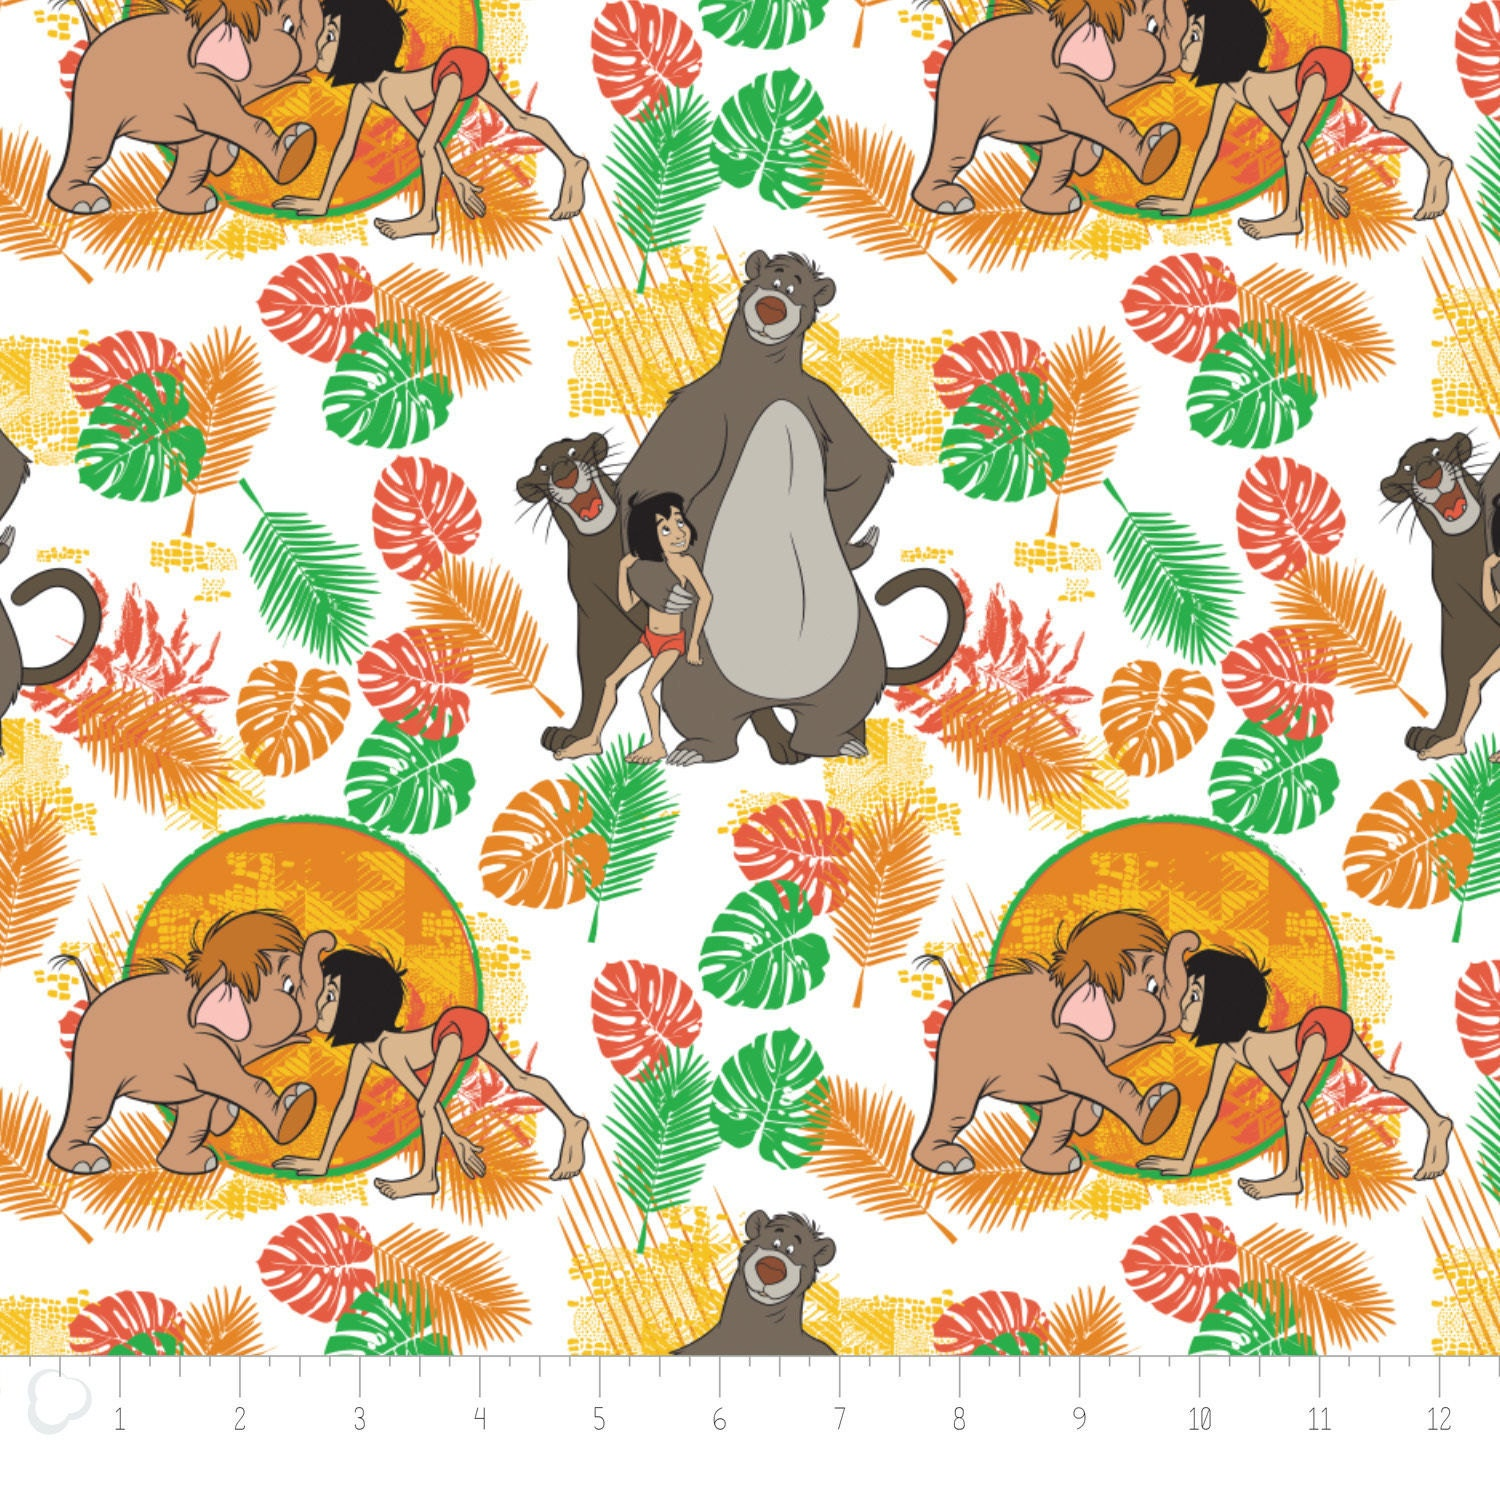 Disney fabric jungle book fabric the jungle book for Childrens jungle fabric